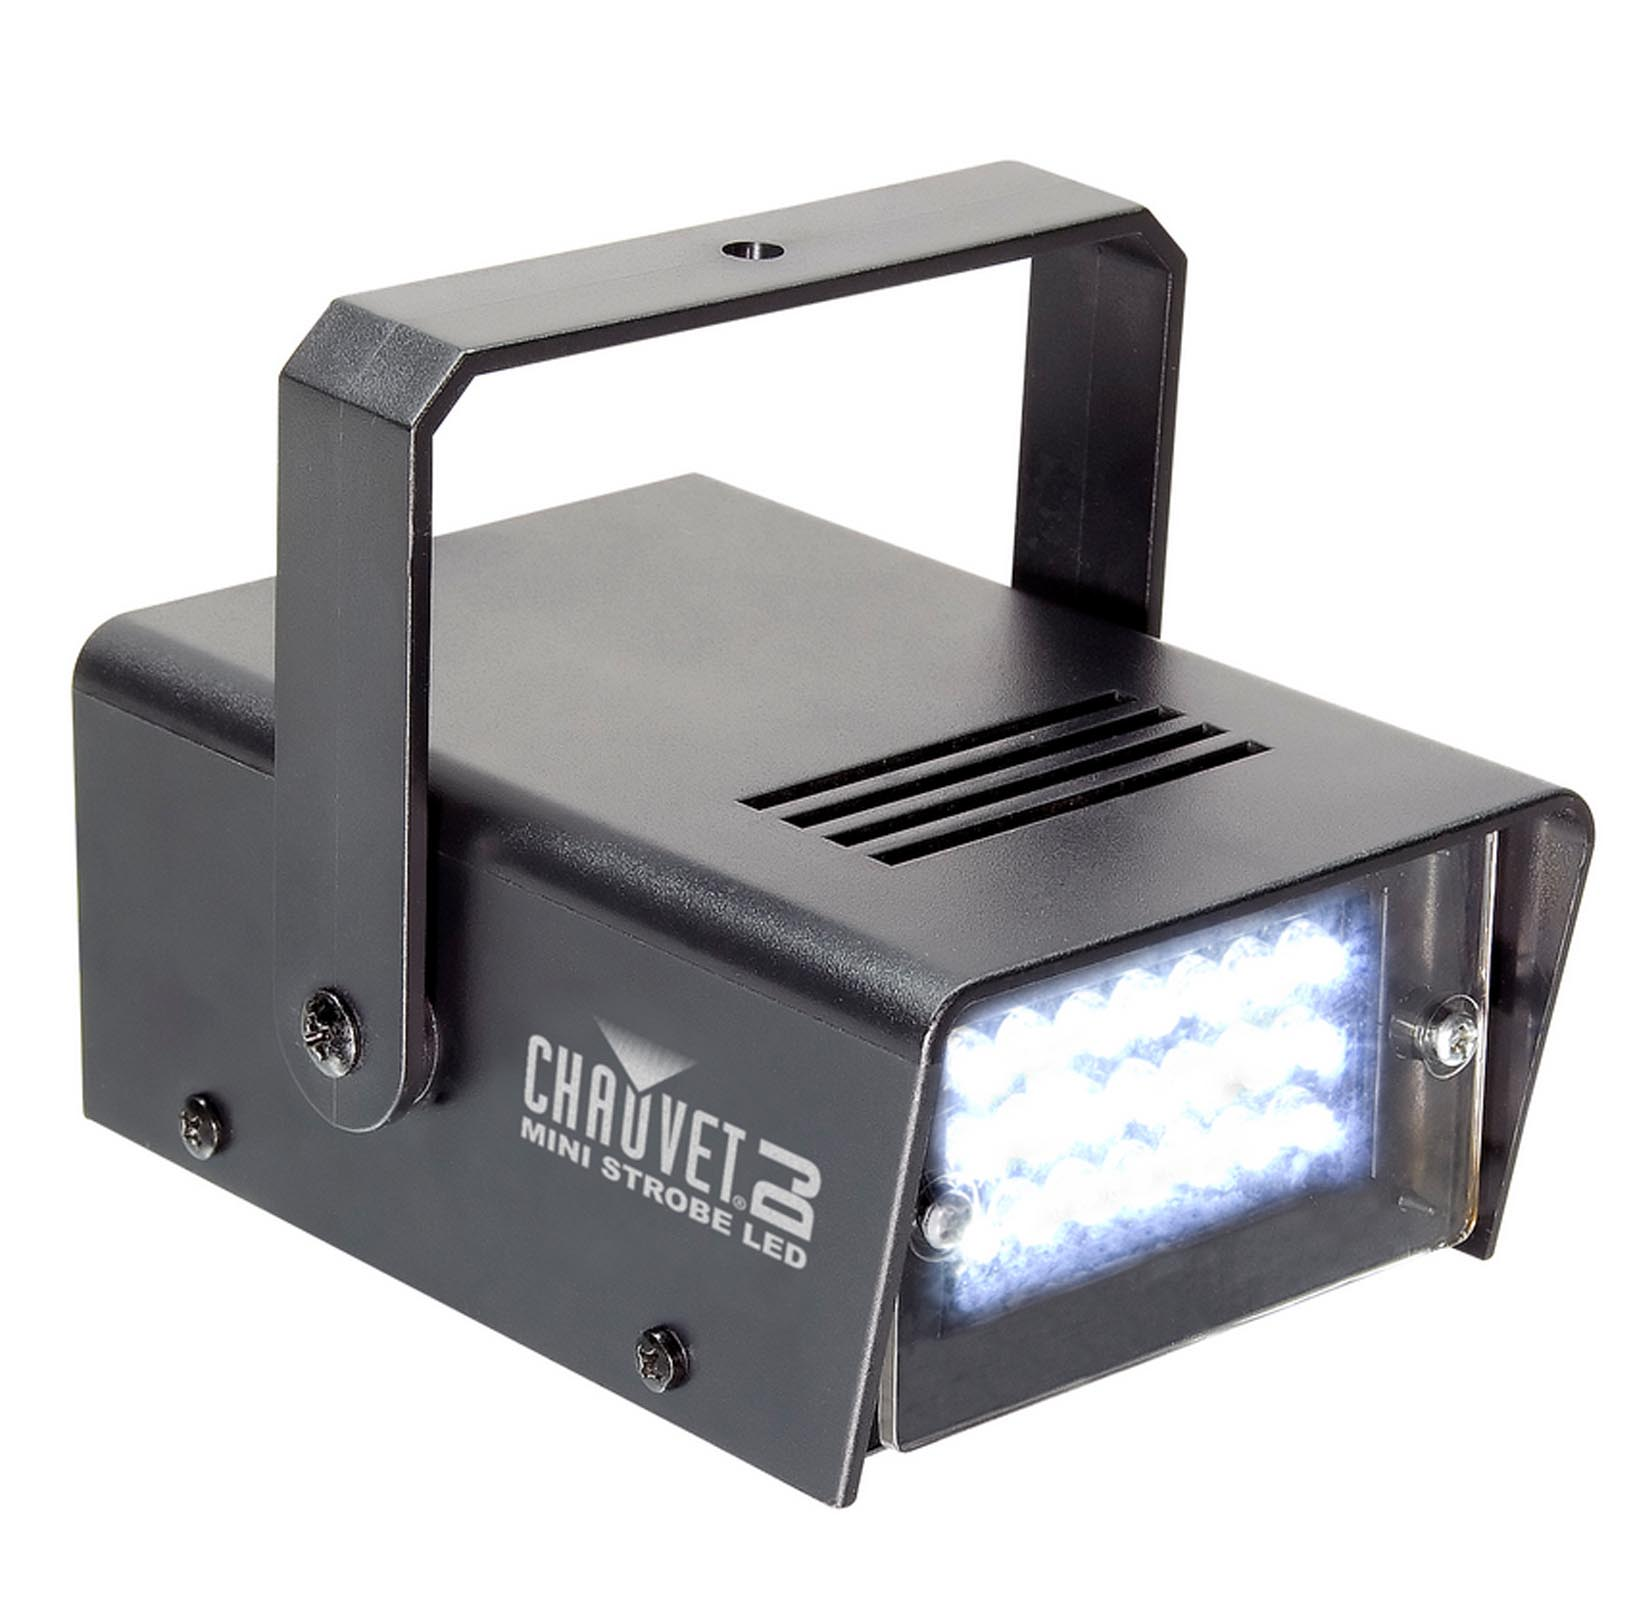 CHAUVET DJ CH730 LED Adjustable 1-12 Flash/Sec Mini Strobe Club Light Effect  sc 1 st  Walmart & CHAUVET DJ CH730 LED Adjustable 1-12 Flash/Sec Mini Strobe Club ...